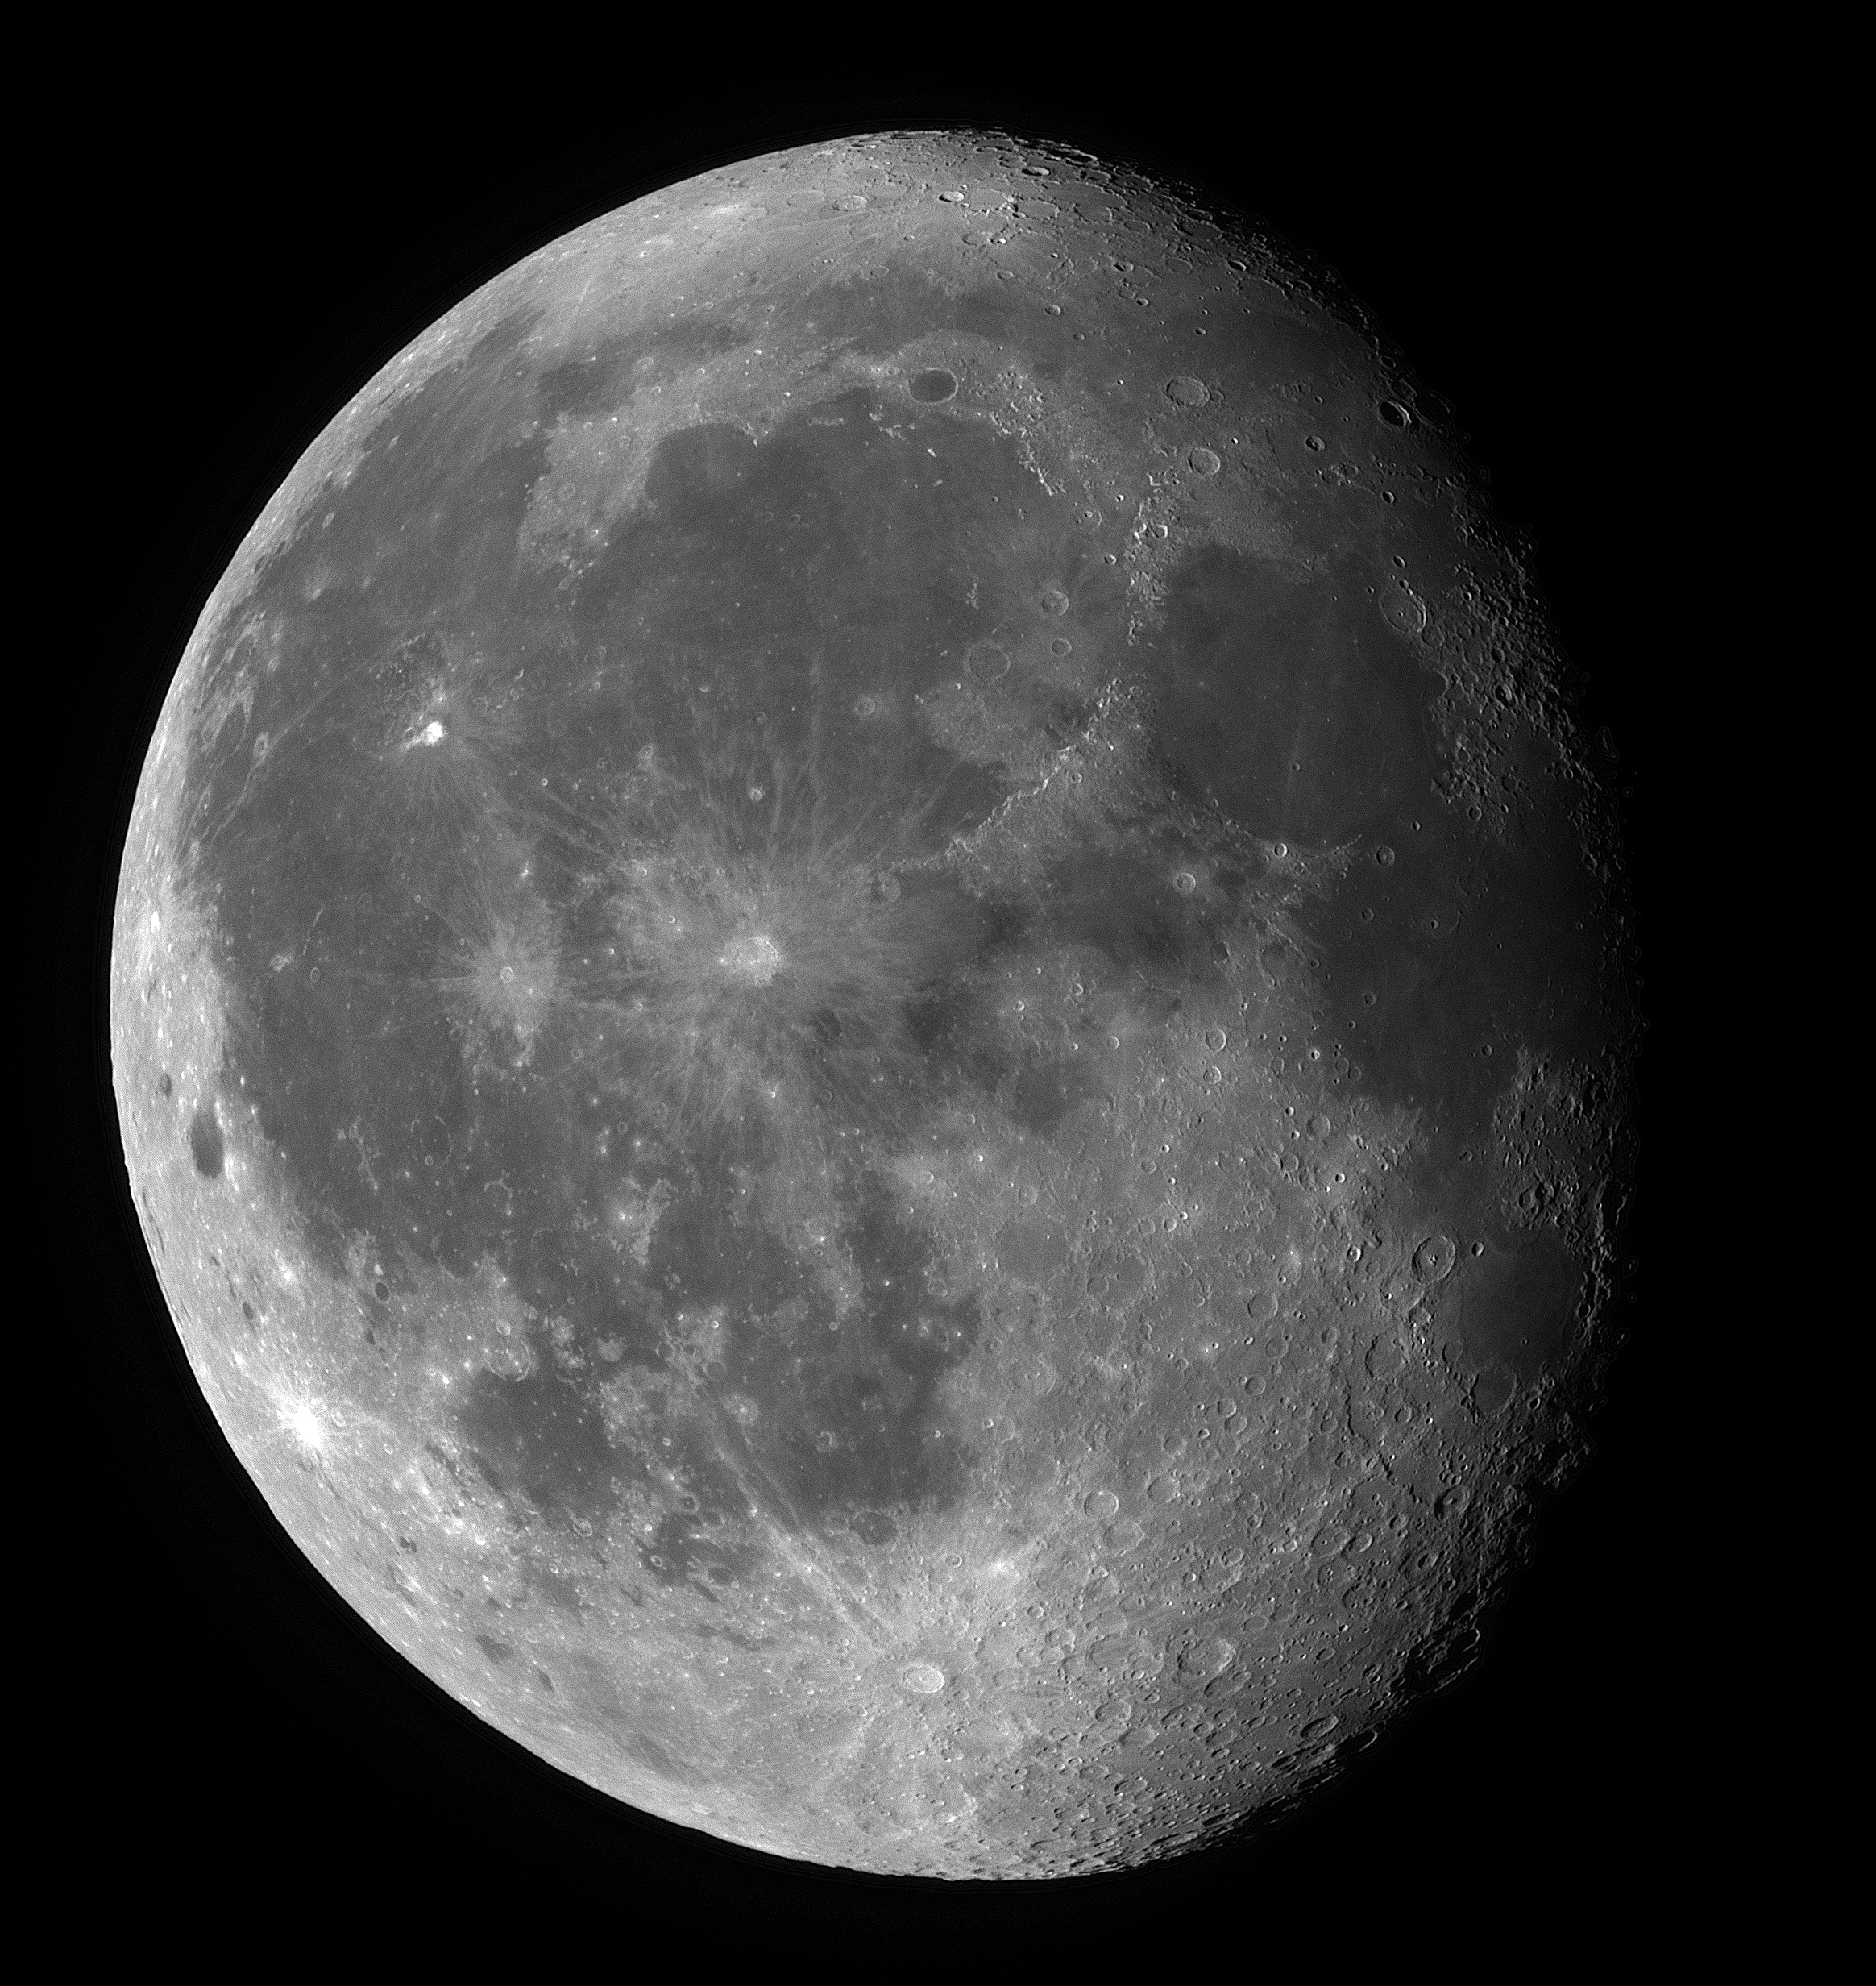 2018-09-28-1520_2-semi-apo-Moon_AS_f1000_g4_ap223_ps.jpg